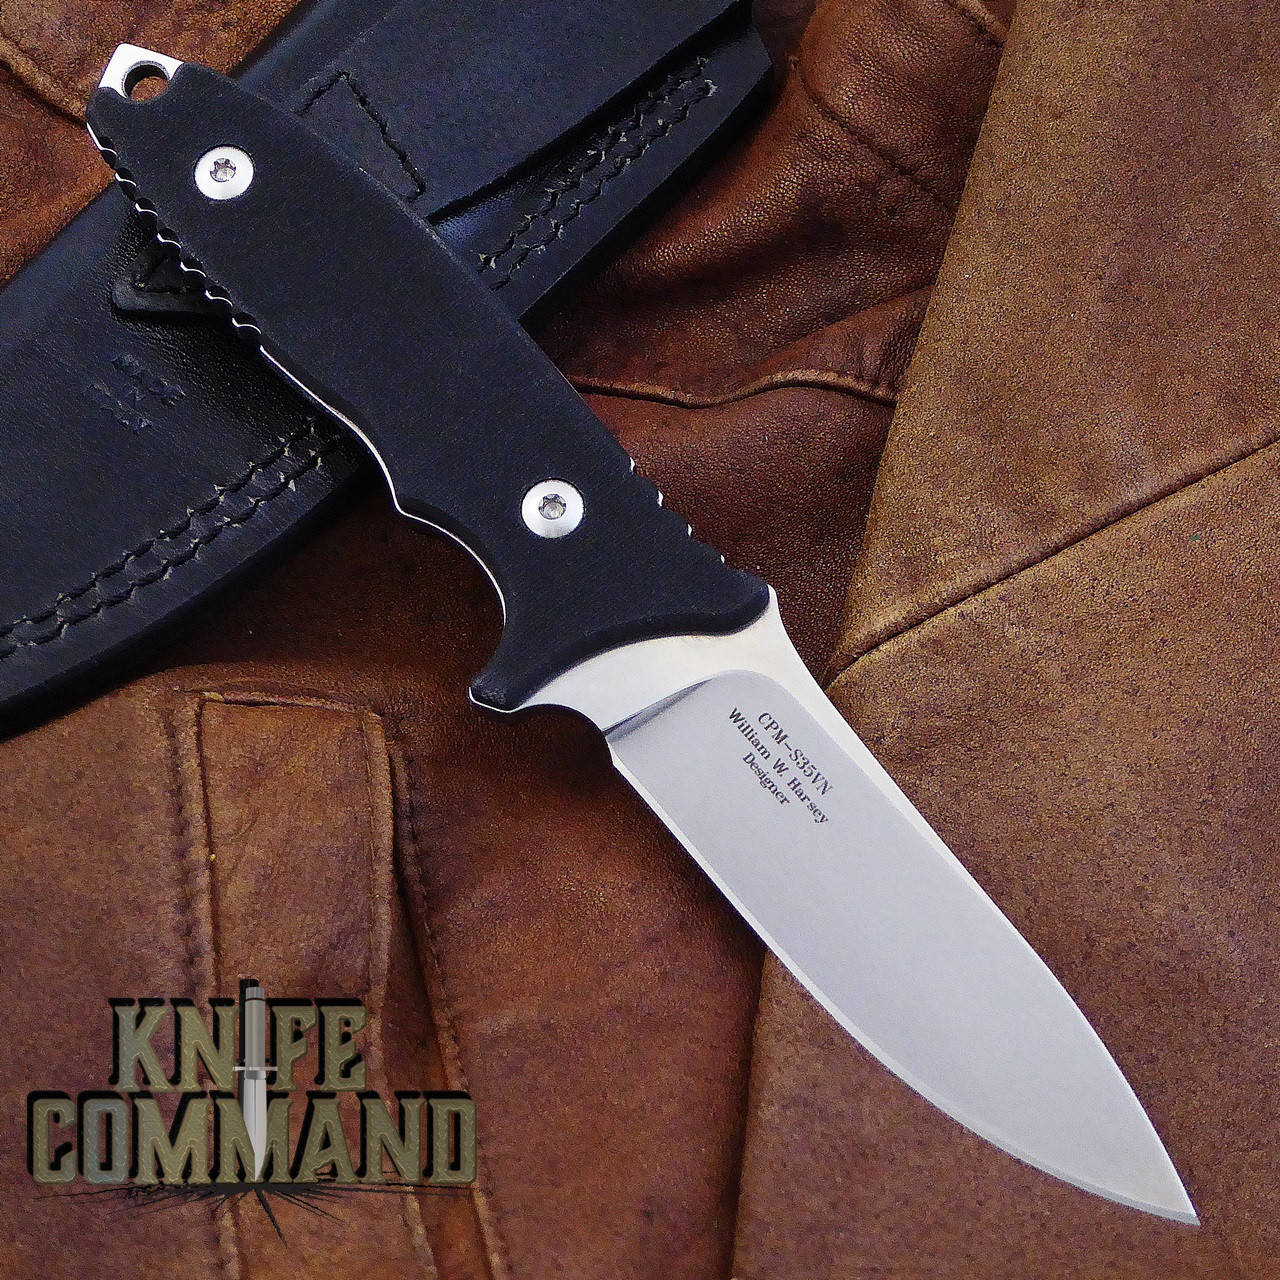 Fantoni HB Fixed Blade William Harsey Combat Tactical Knife S35VN Leather.  Black G-10 with exposed tang.